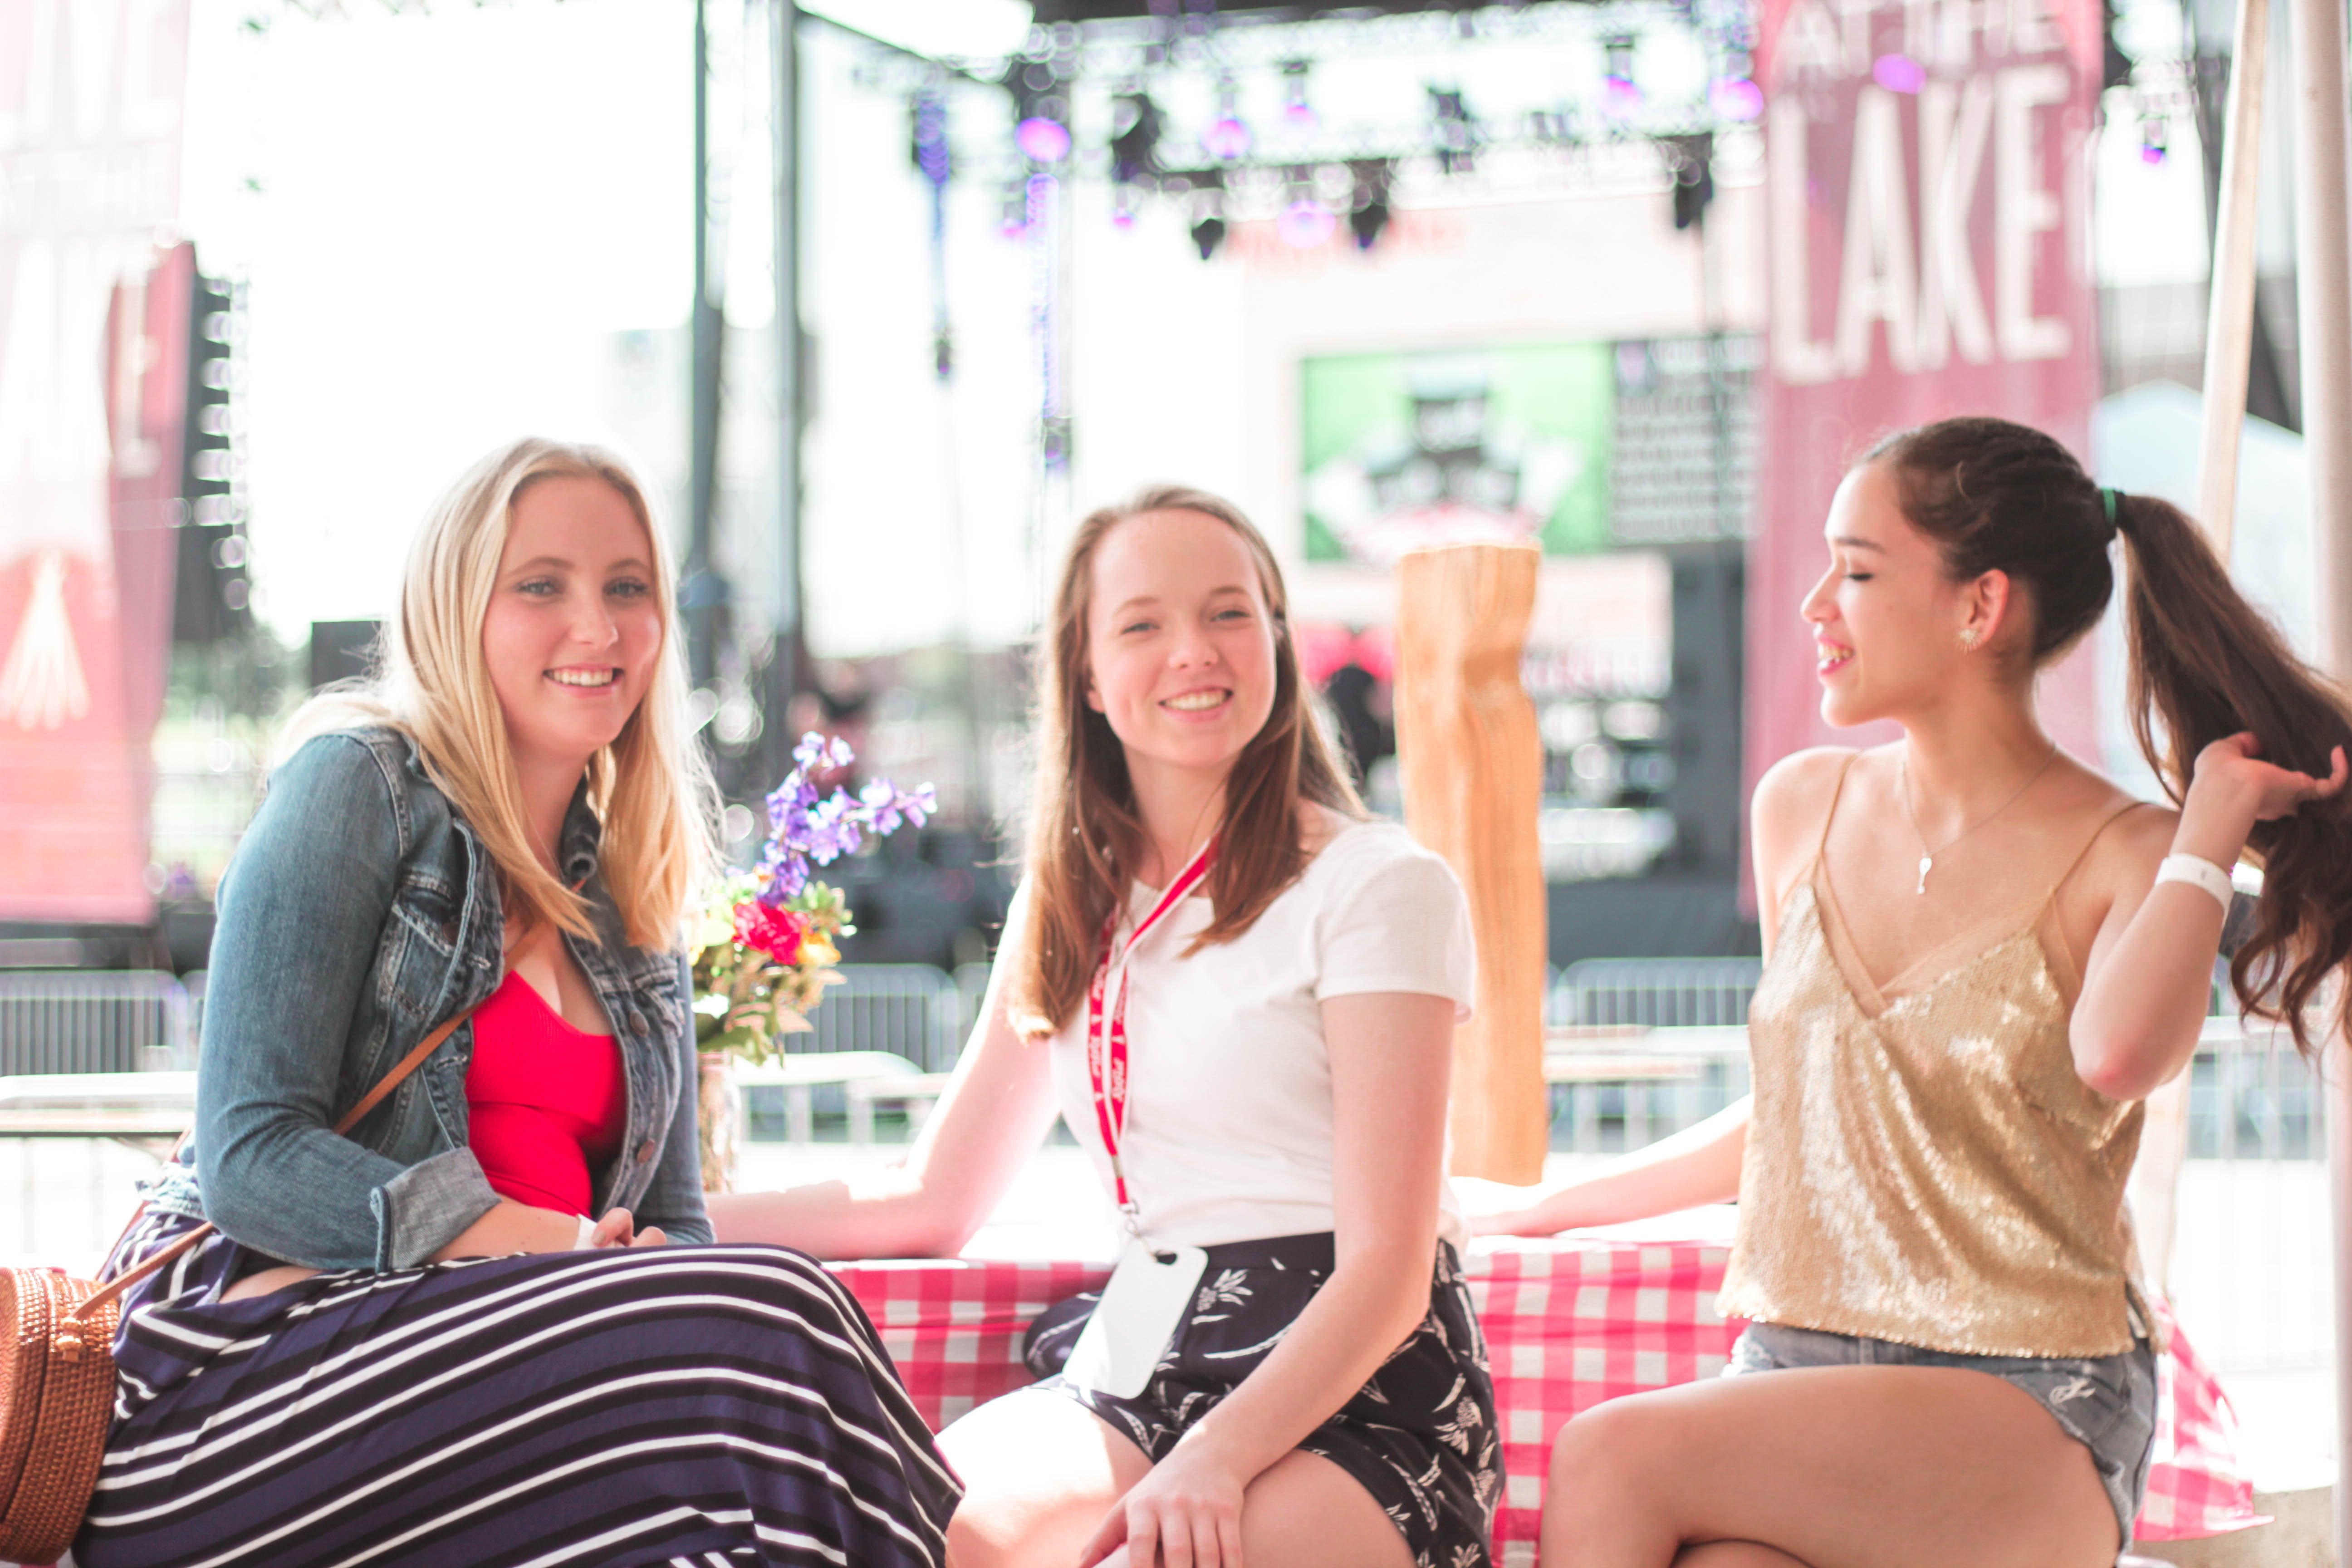 Minnesota travel blogger Eva Phan of Eva Darling at the mystic lake casino great midwest ribfest with friend in gold sequin camisole top from forever 21 f21 and citizens of humanity mid-rise denim distressed shorts